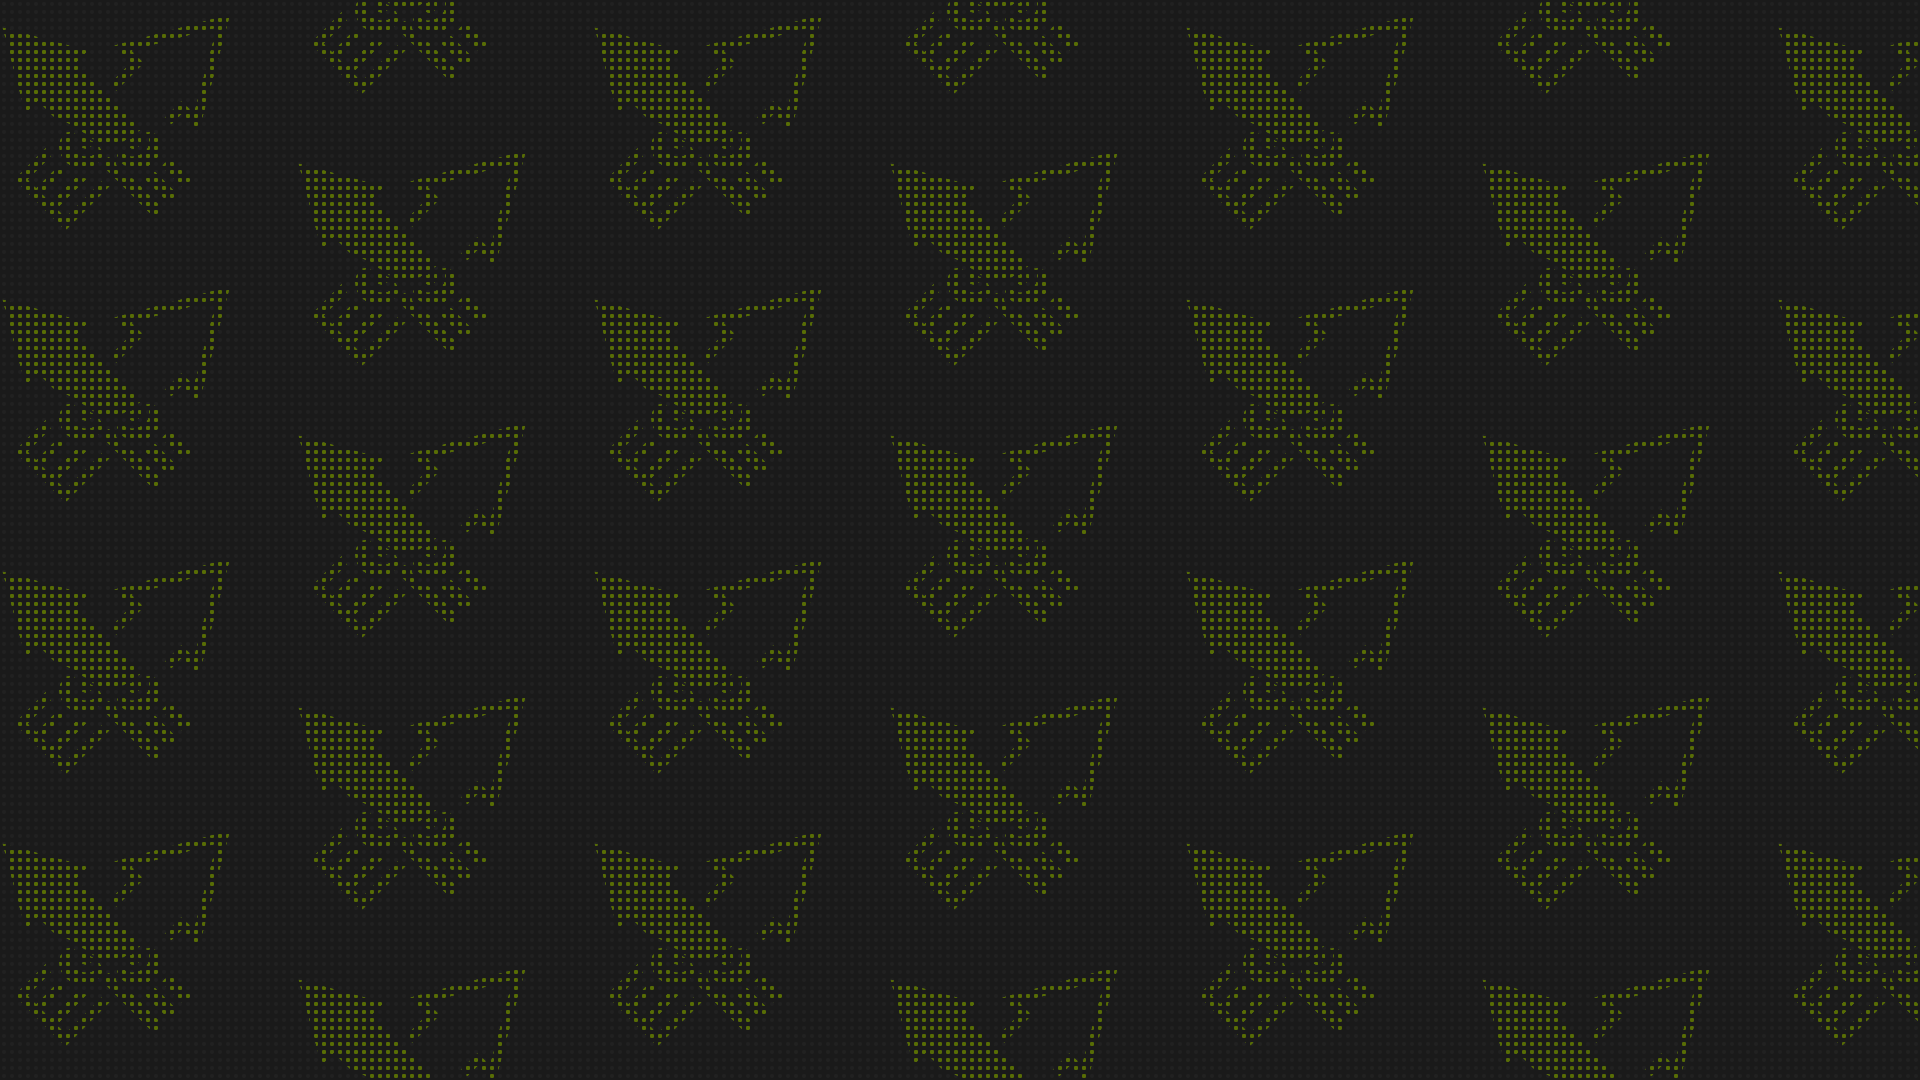 arrow wallpaper 1920x1080